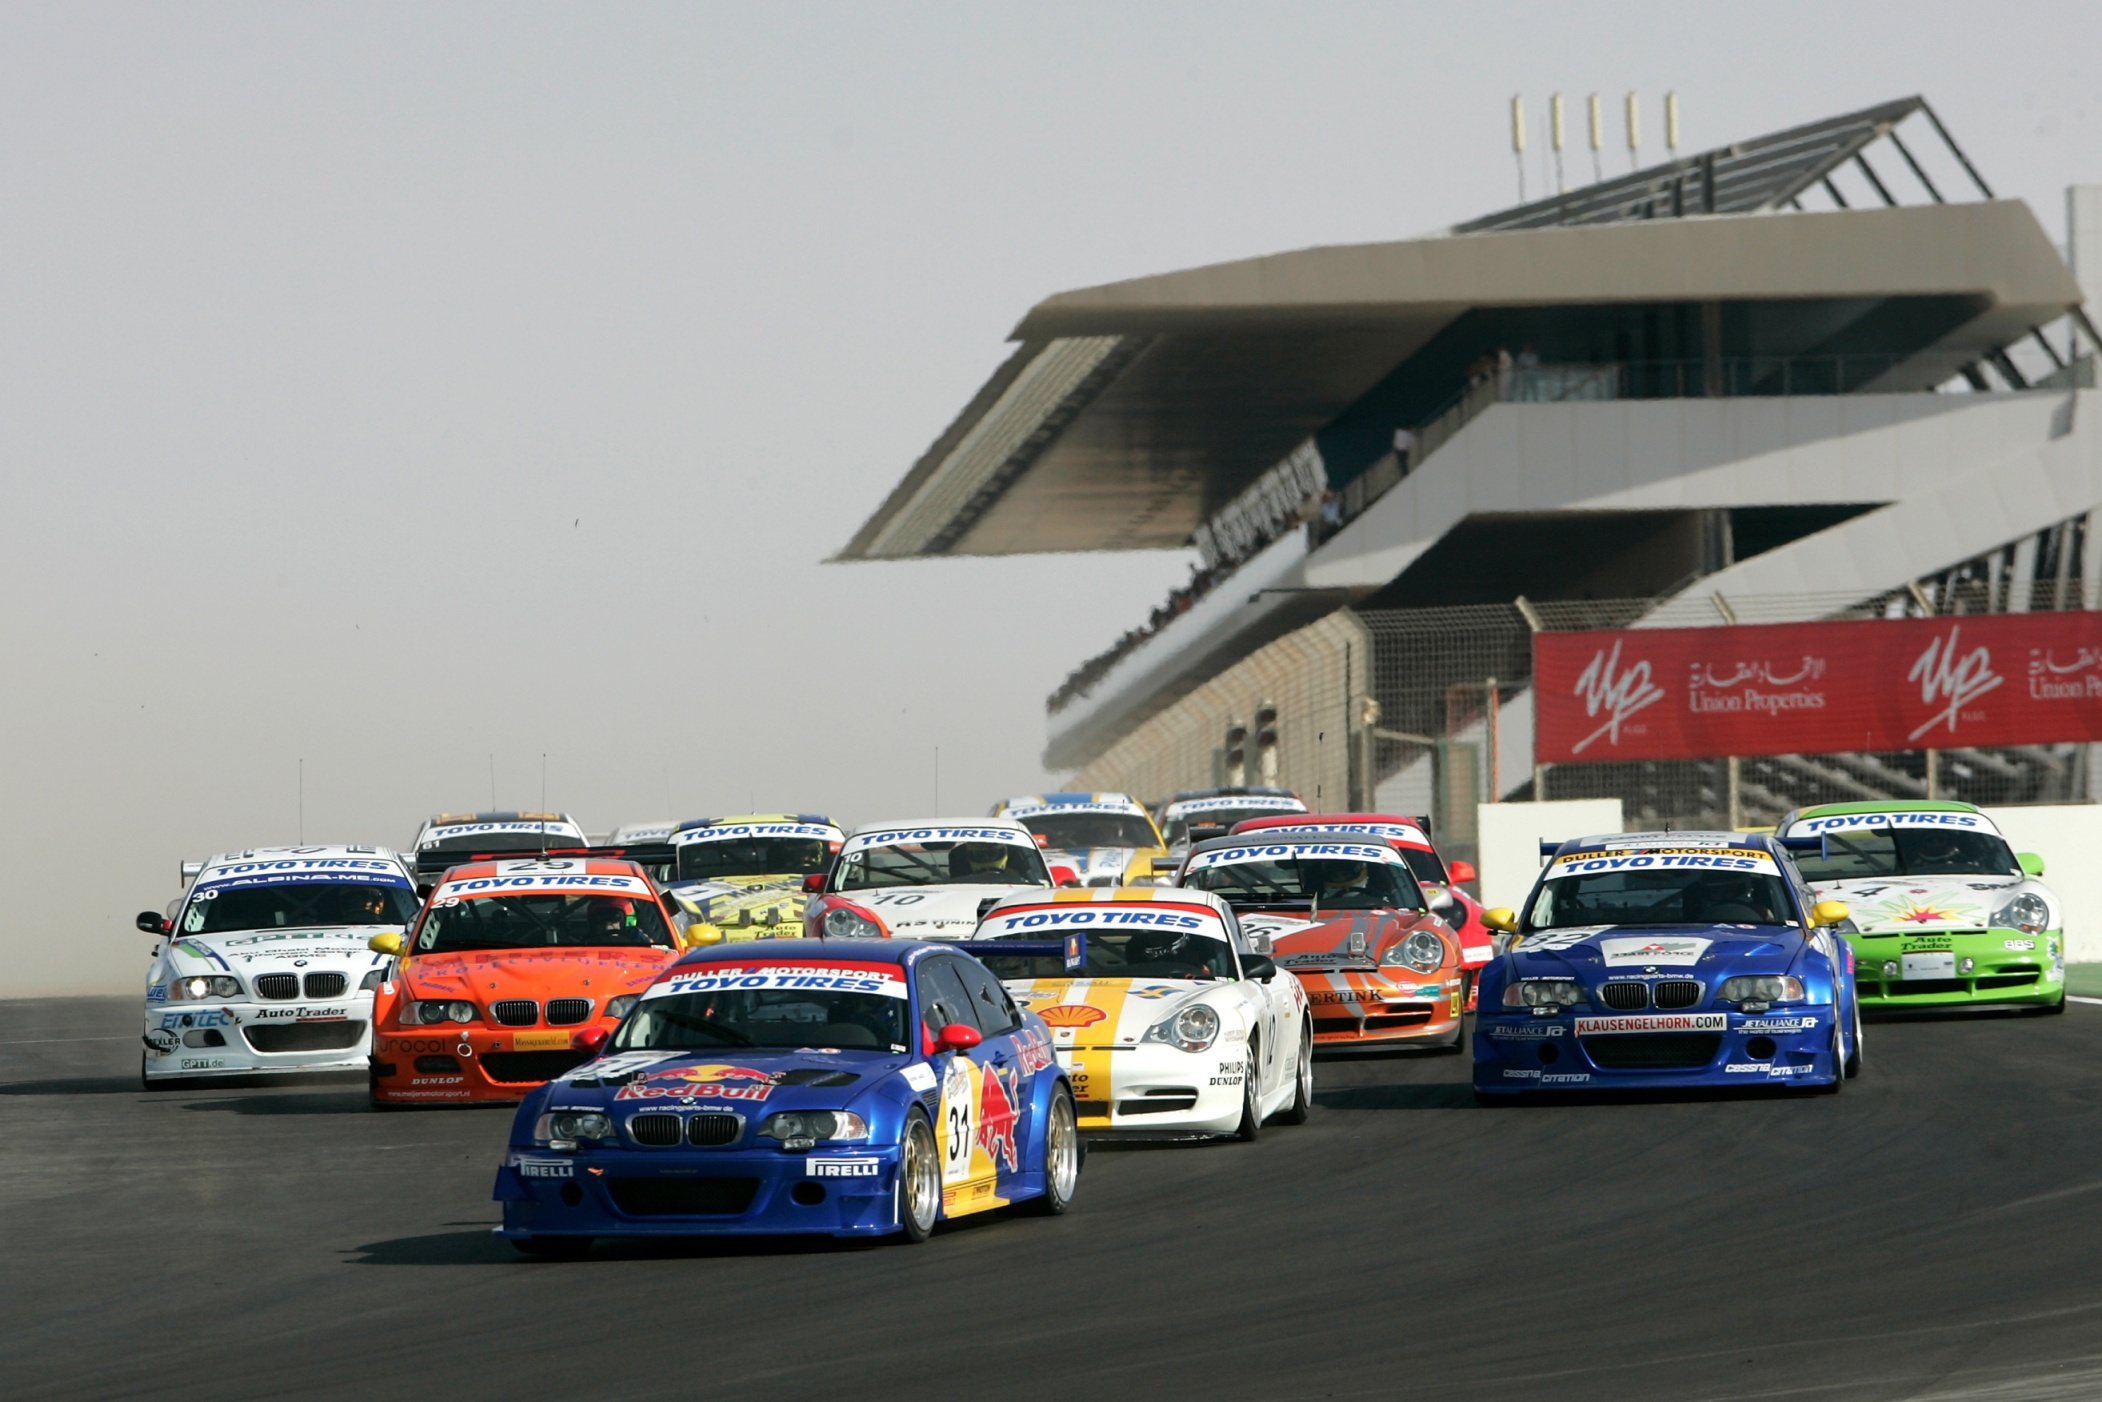 Dubai 24: Record line up for classic battles in Hankook 24hr of Dubai this weekend